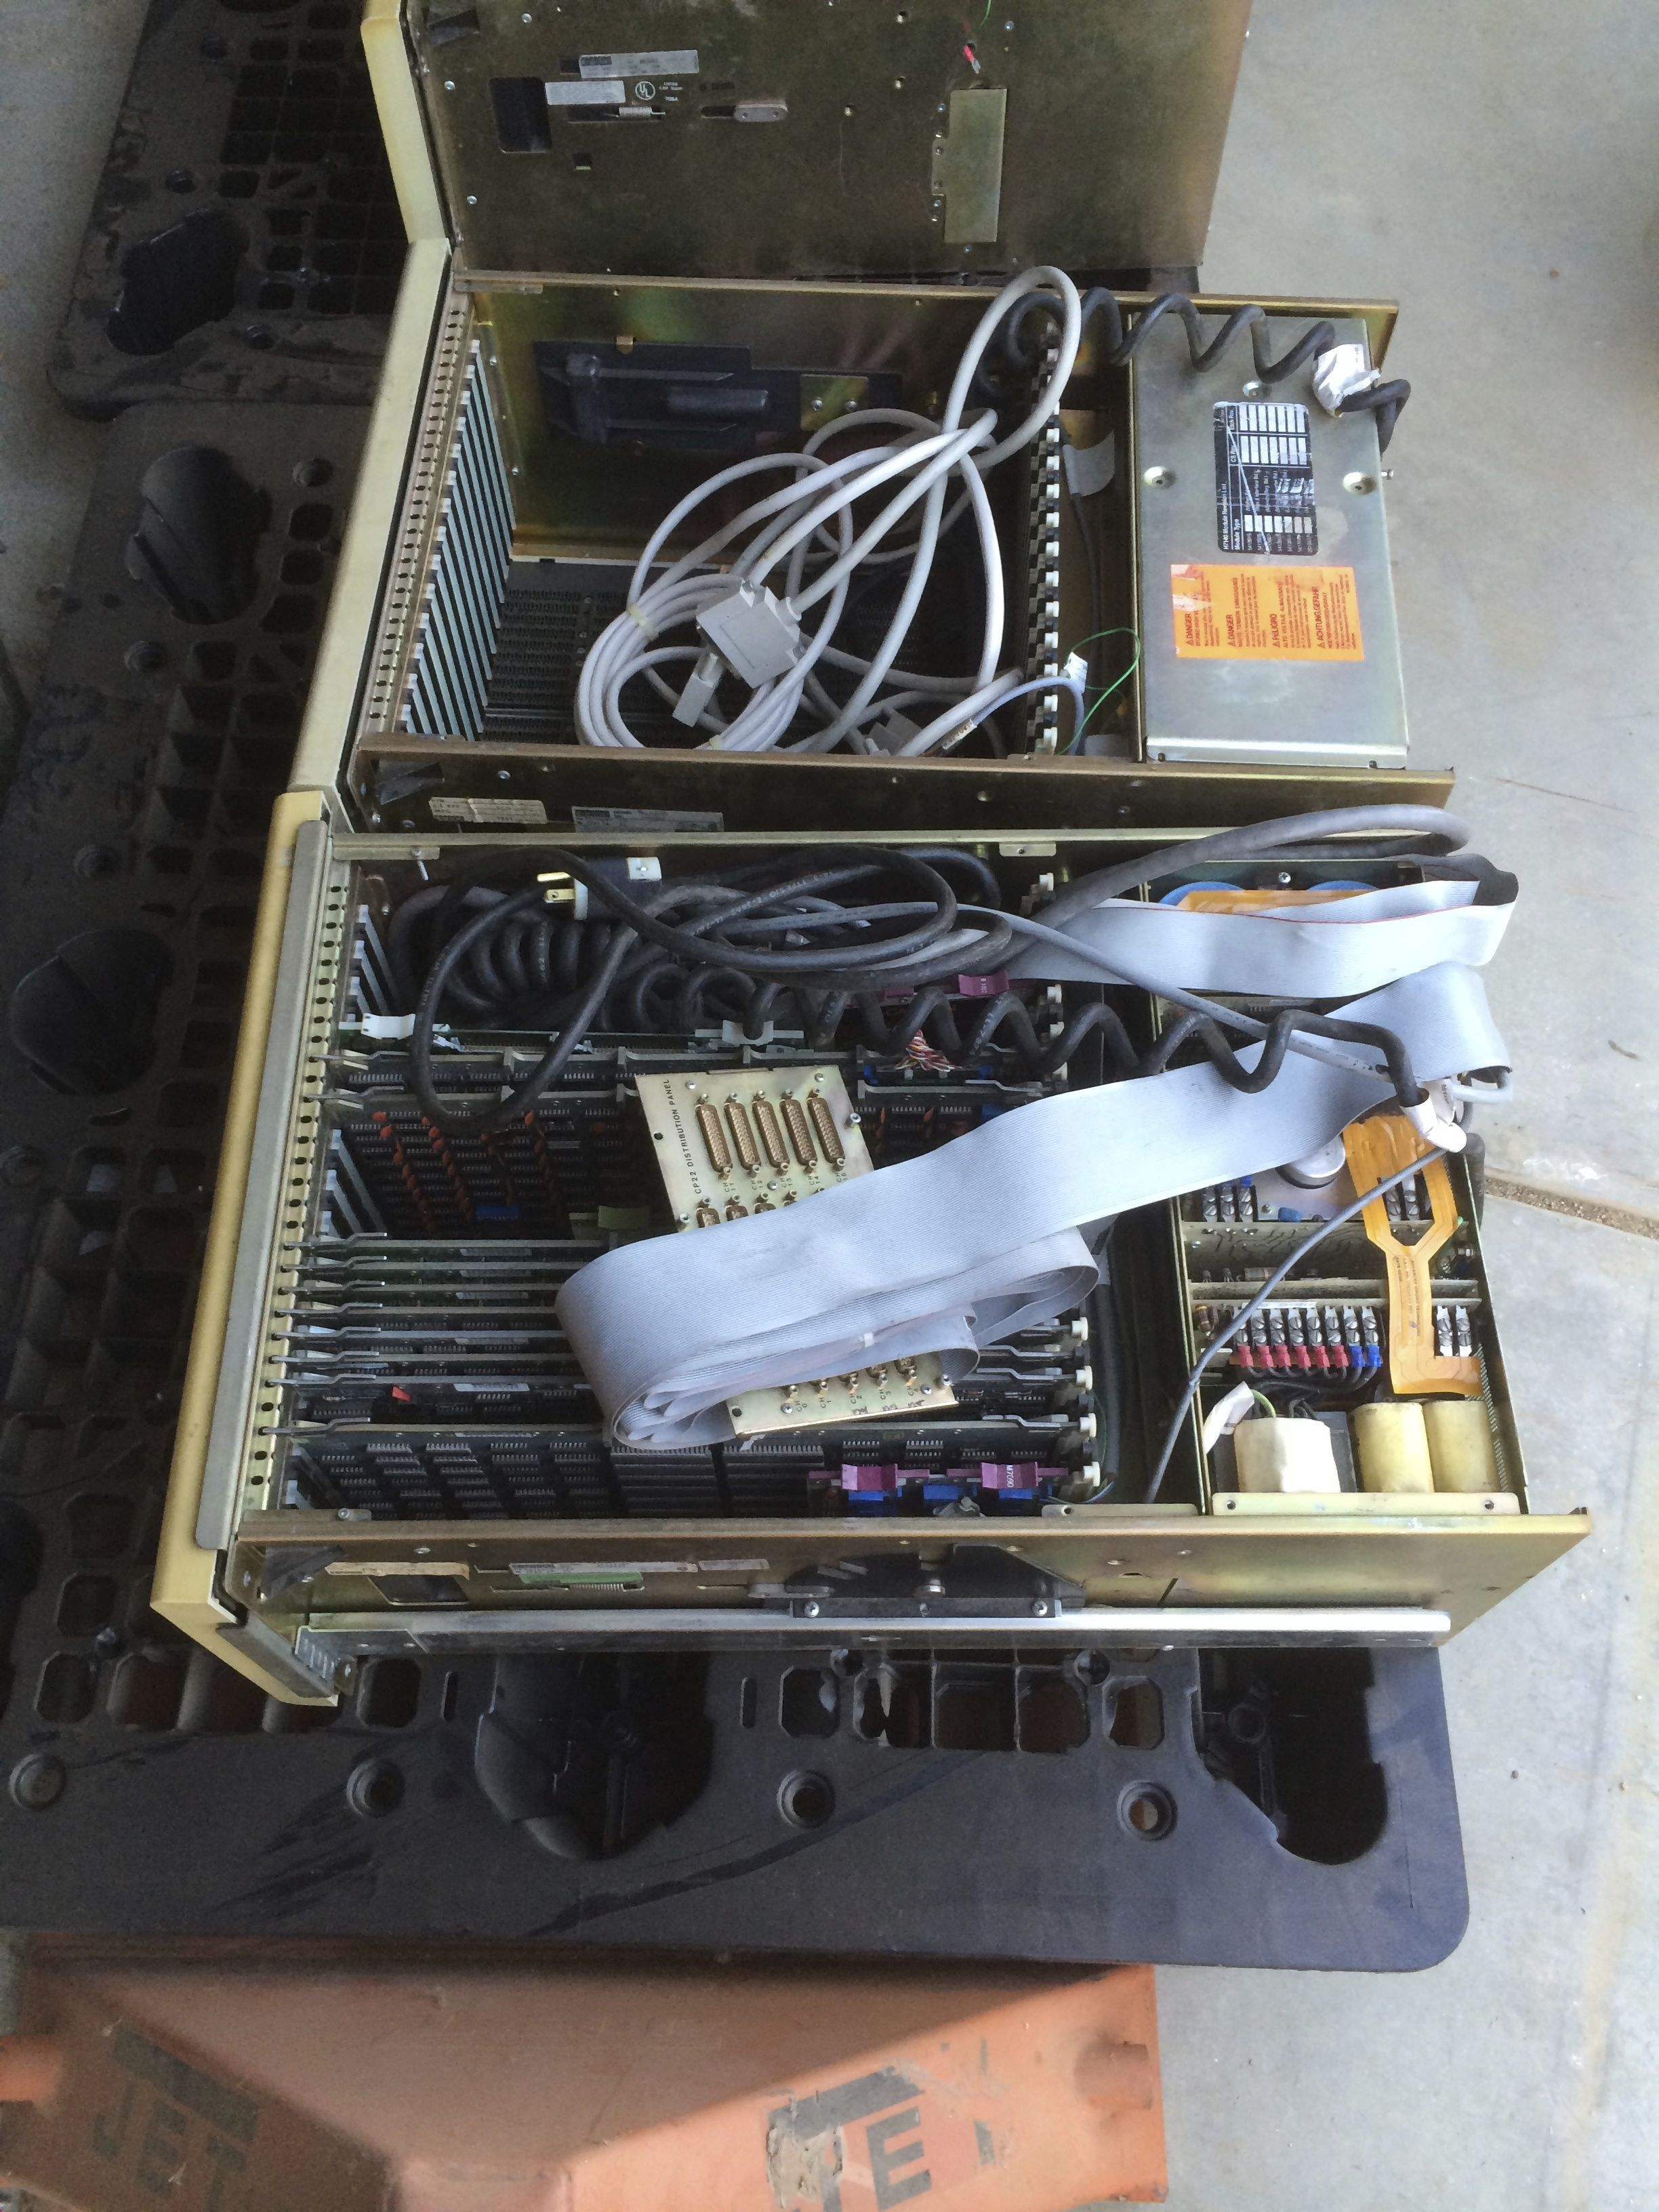 Two of the PDP-11/44 Chassis